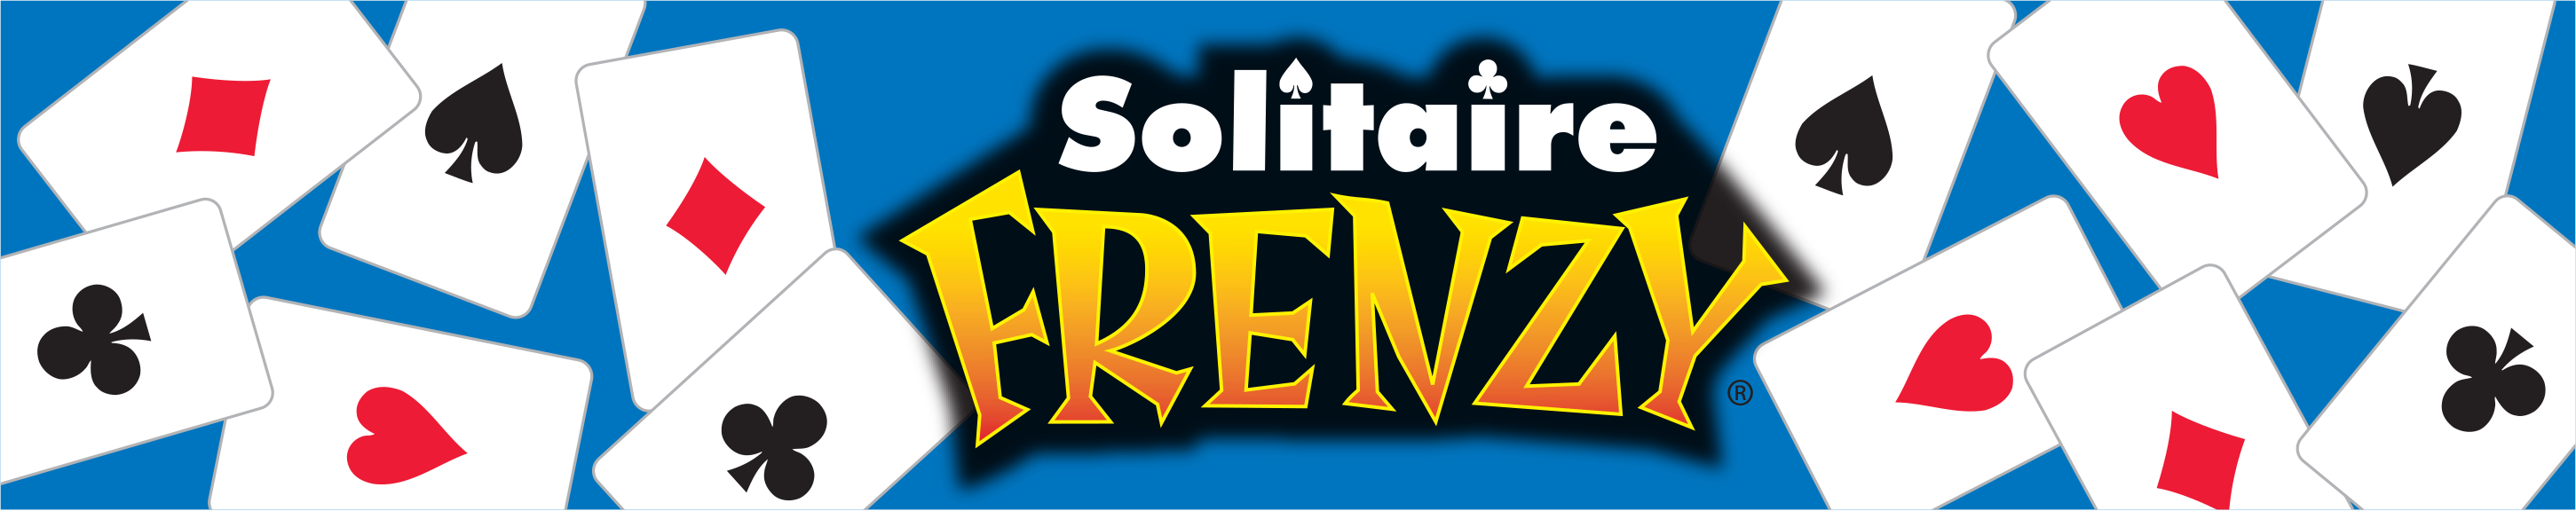 Solitaire Frenzy